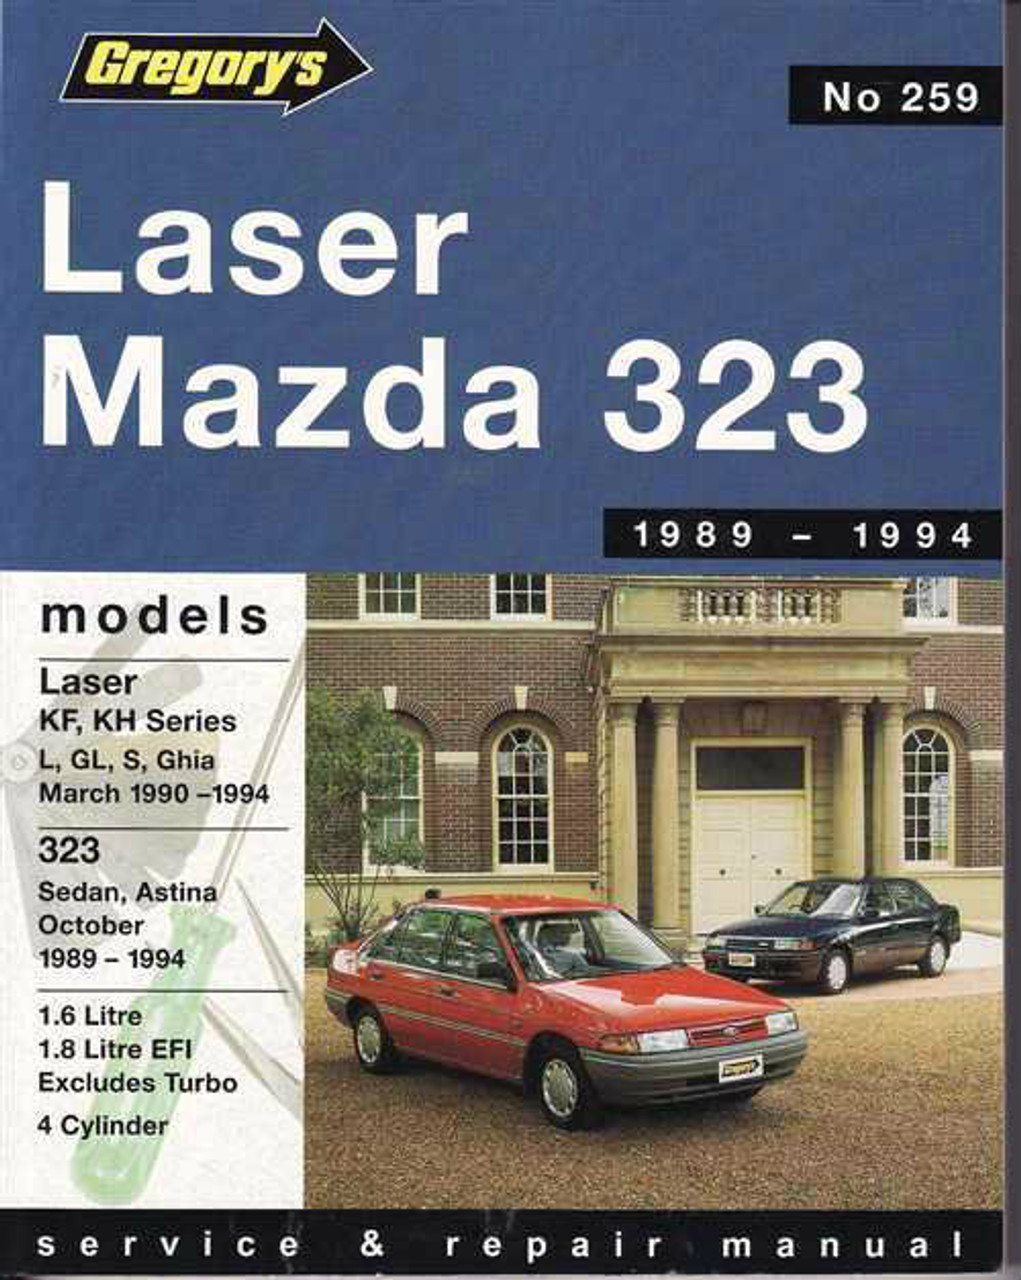 ford laser amp mazda 323 1989 1994 workshop manual rh automotobookshop com au 1990 mazda 323 service manual 1988 mazda 323 owner's manual